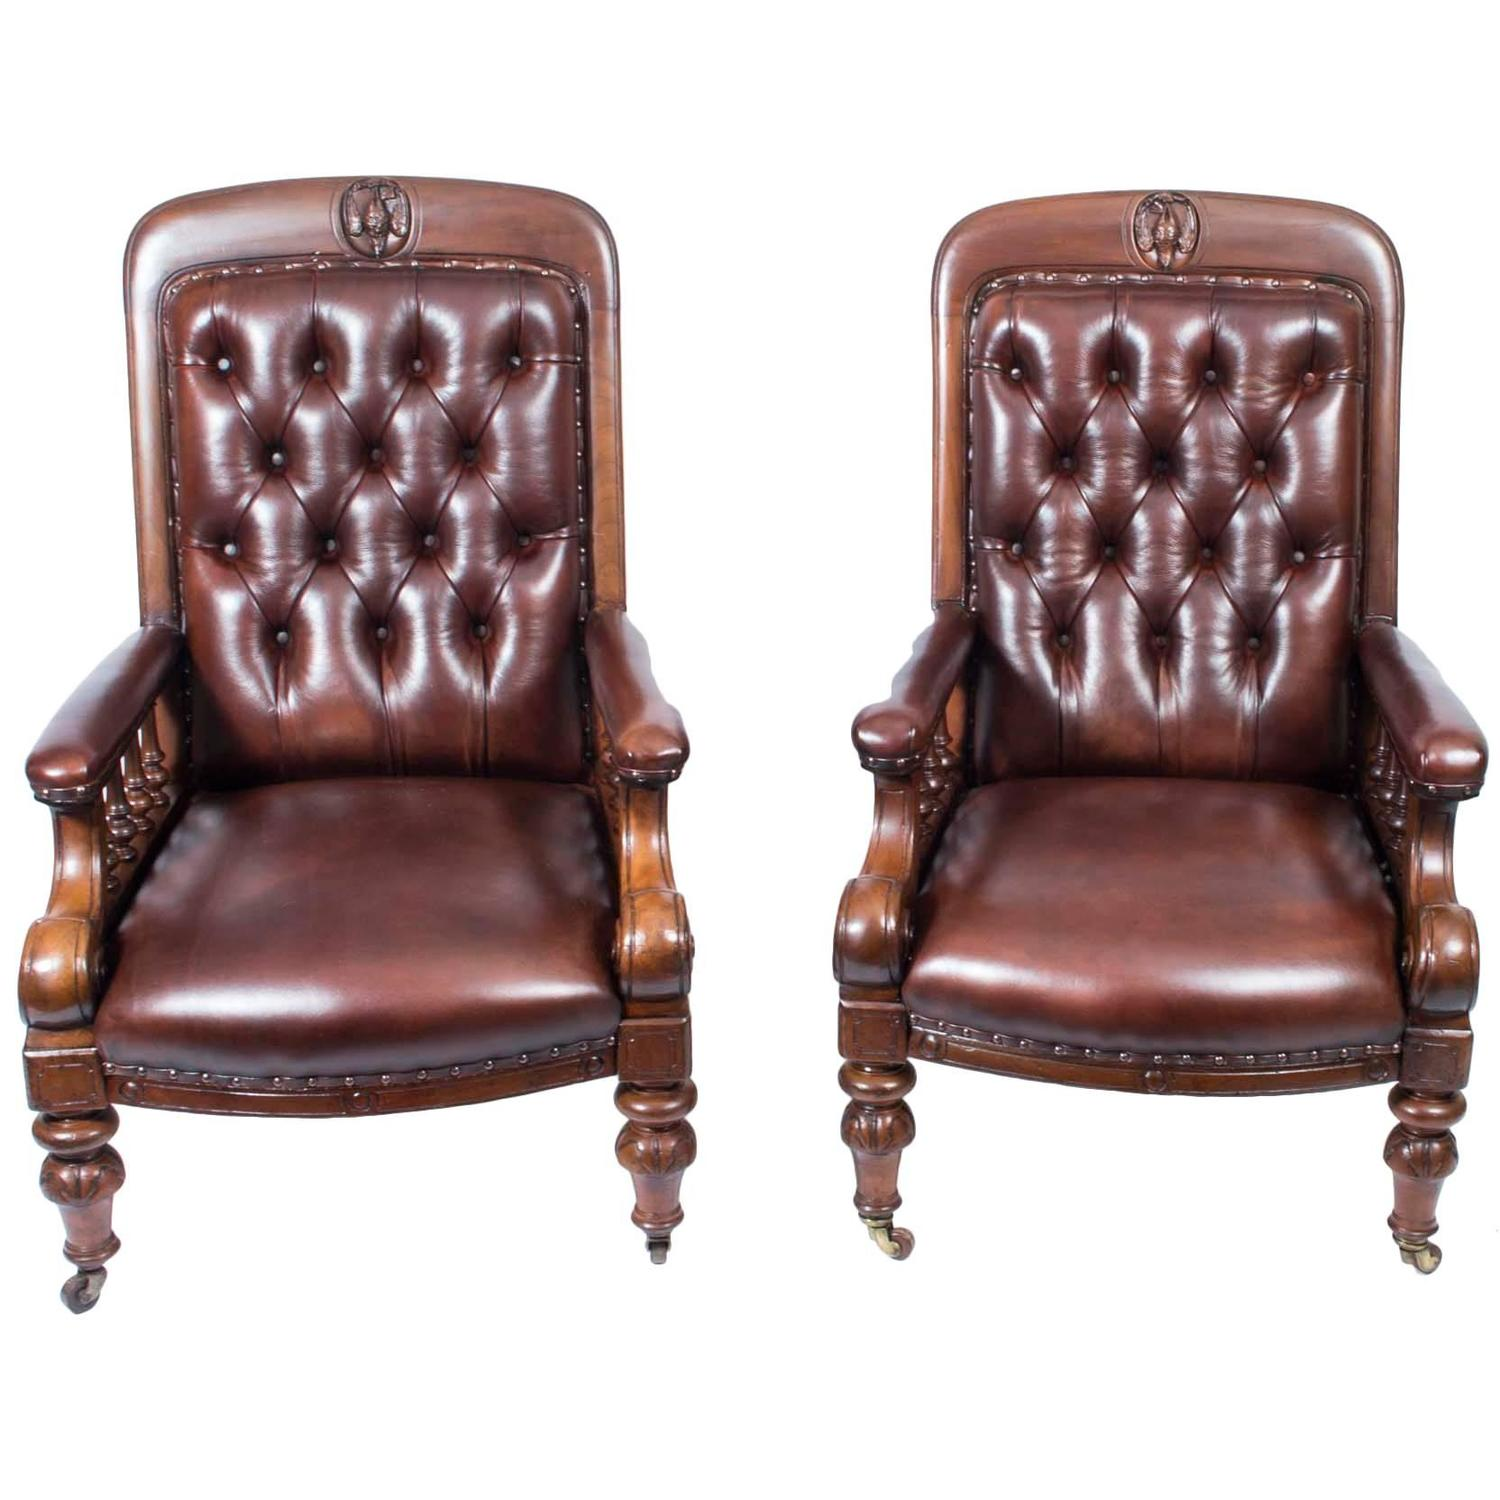 Antique leather armchair - Antique Pair Of English Victorian Leather Armchairs Circa 1880